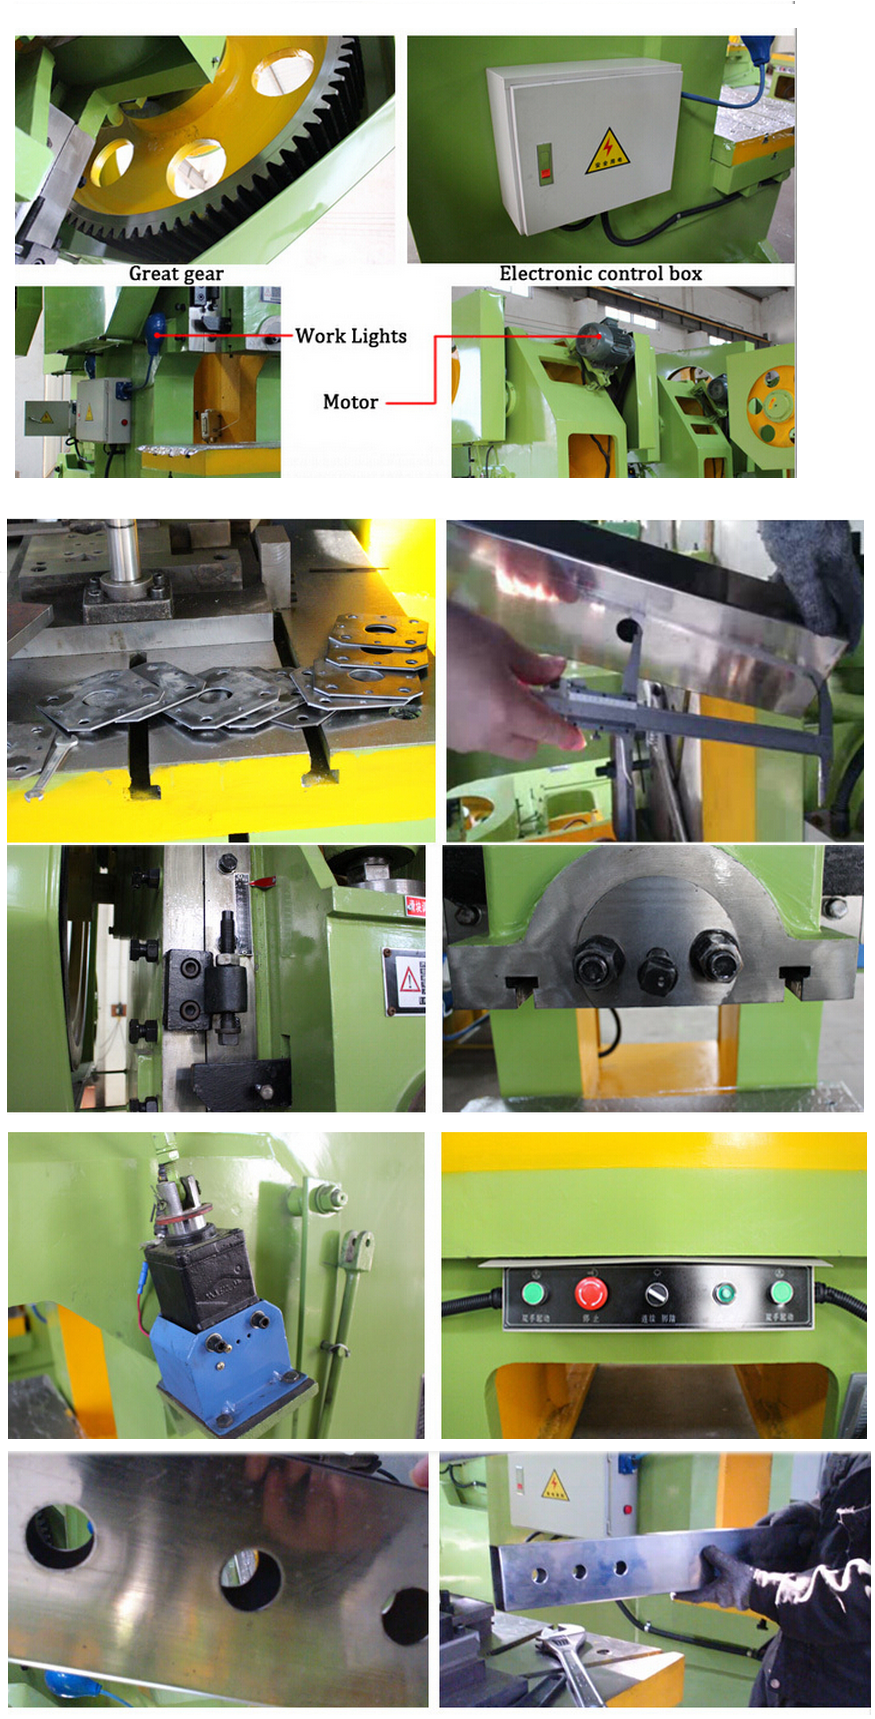 Quality sheet metal manual hole punching machine with CE,manual punching machine for aluminum